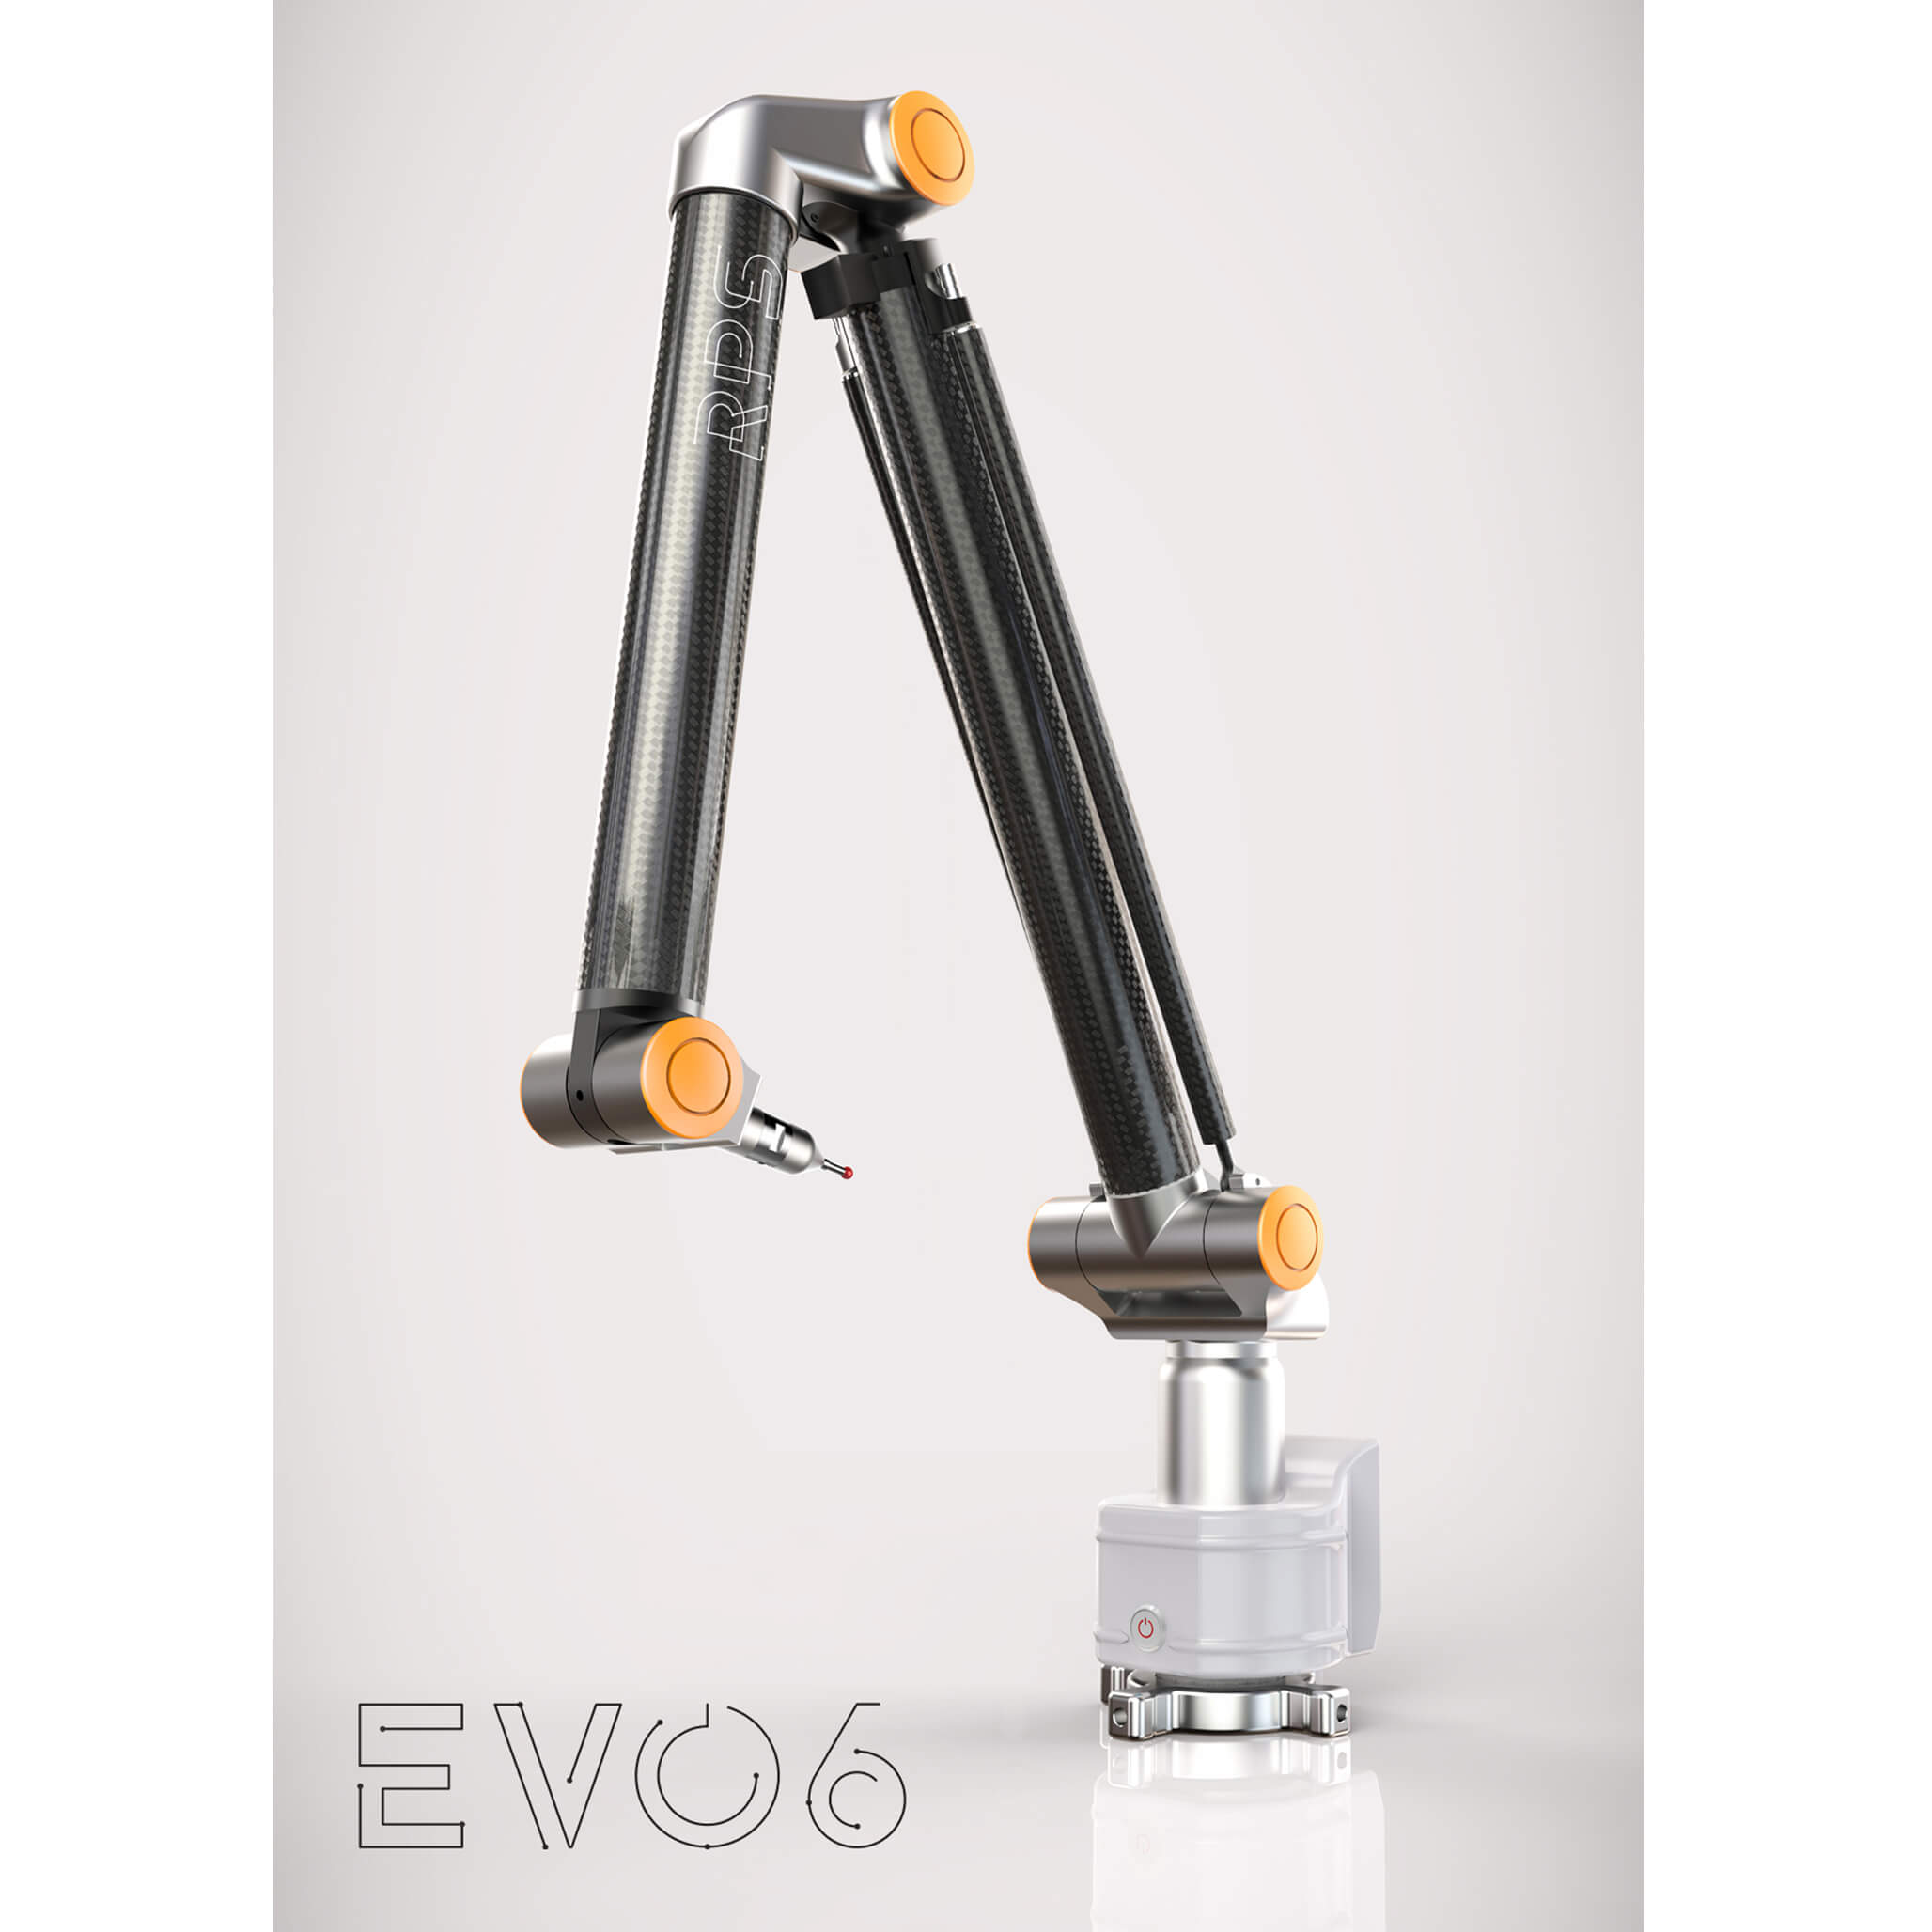 RPS Evo 6 articulated Measuring Arm